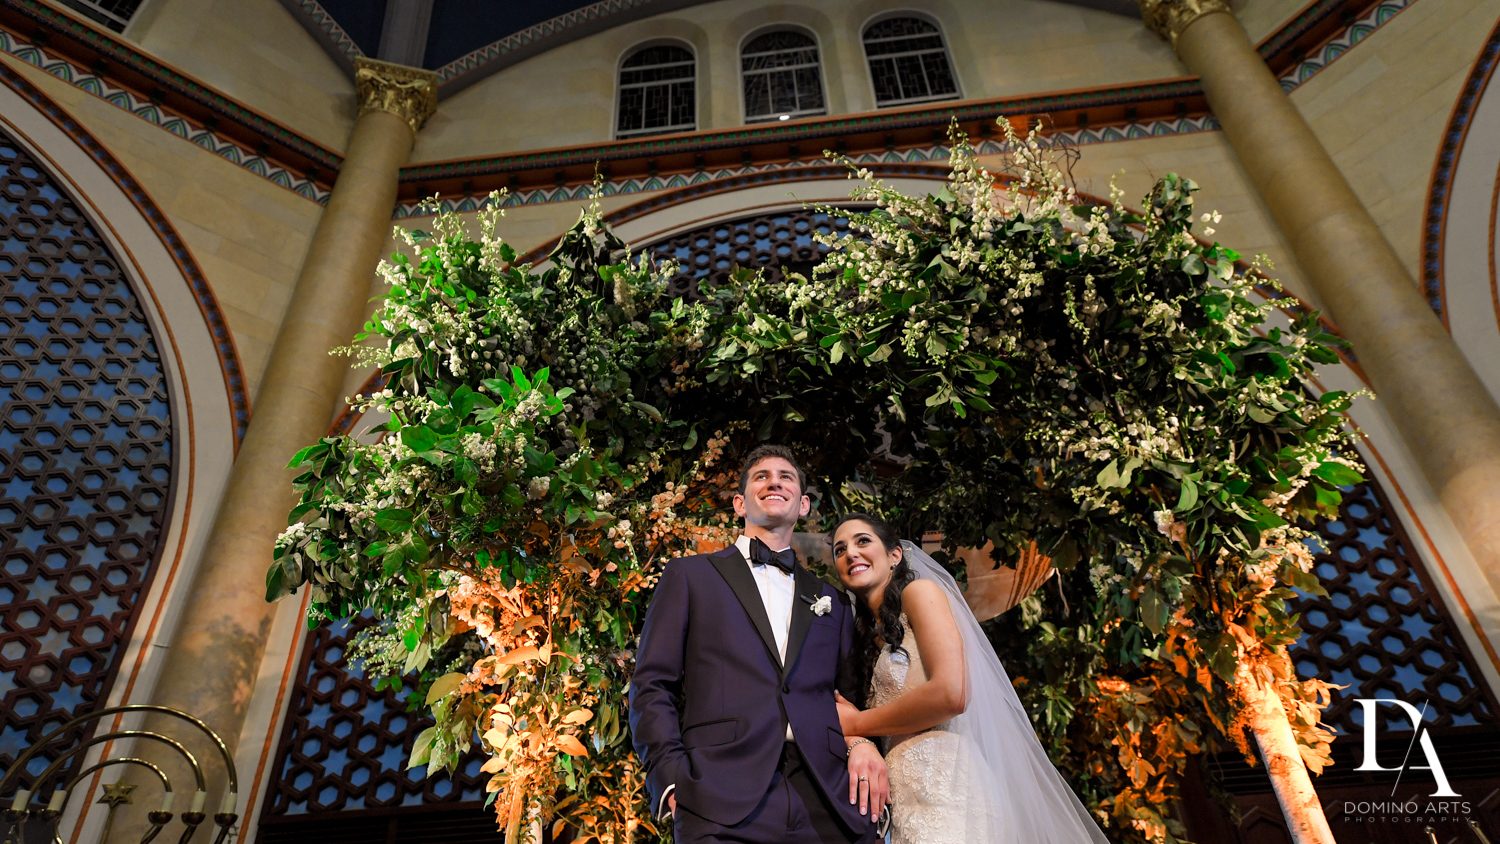 chuppah at Classic Miami Beach Wedding at Temple Emanu-El and Emanuel Luxury Venue by Domino Arts Photography